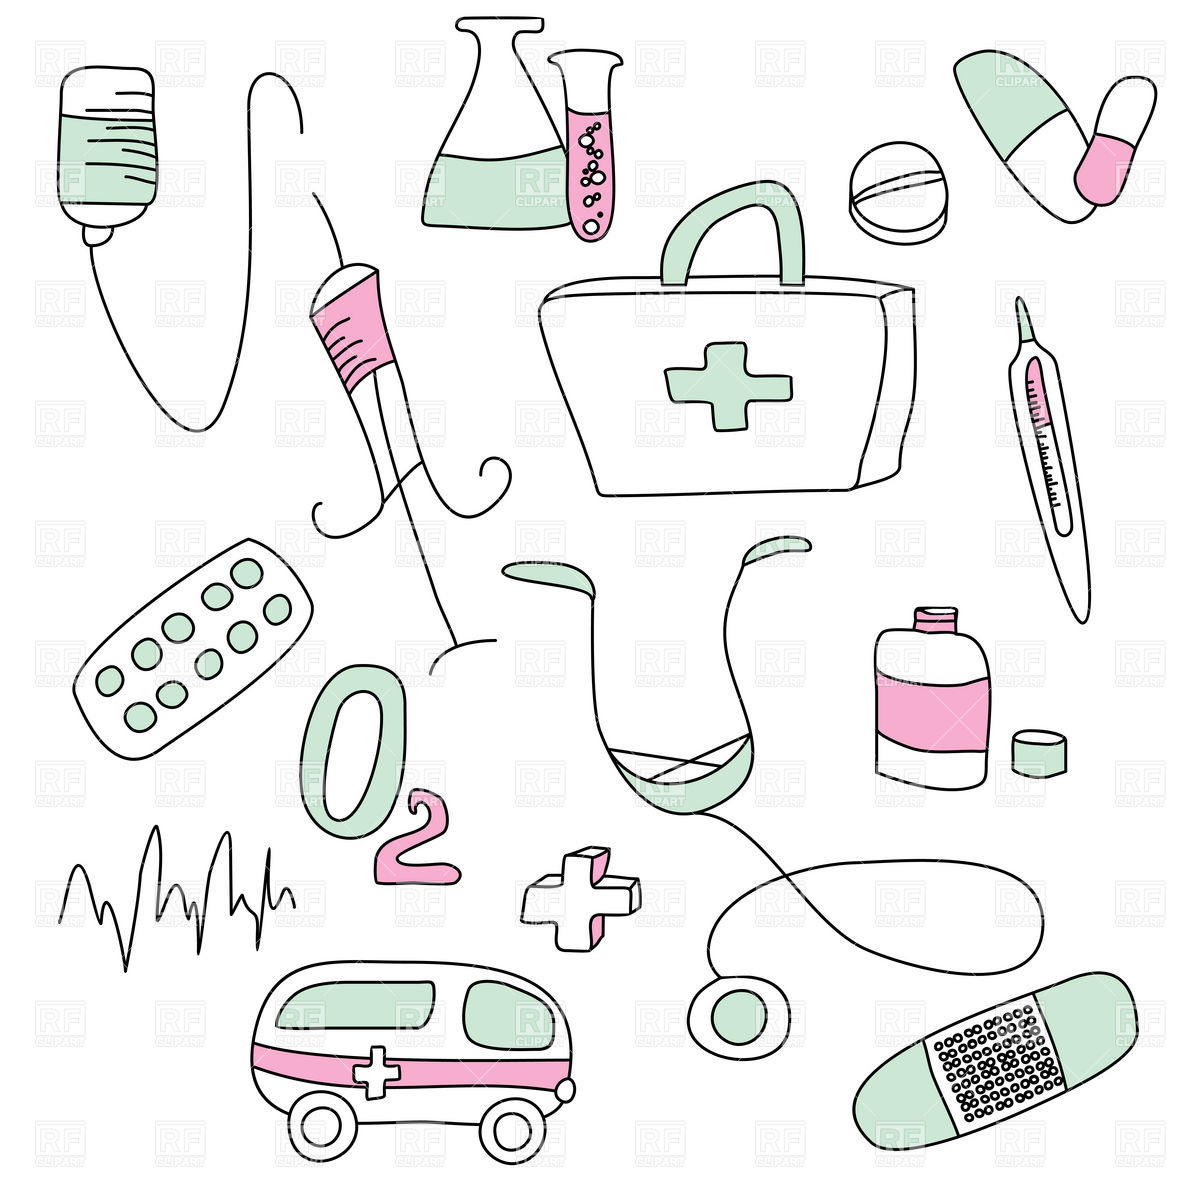 Clip Art Medical Supplies Clipart.